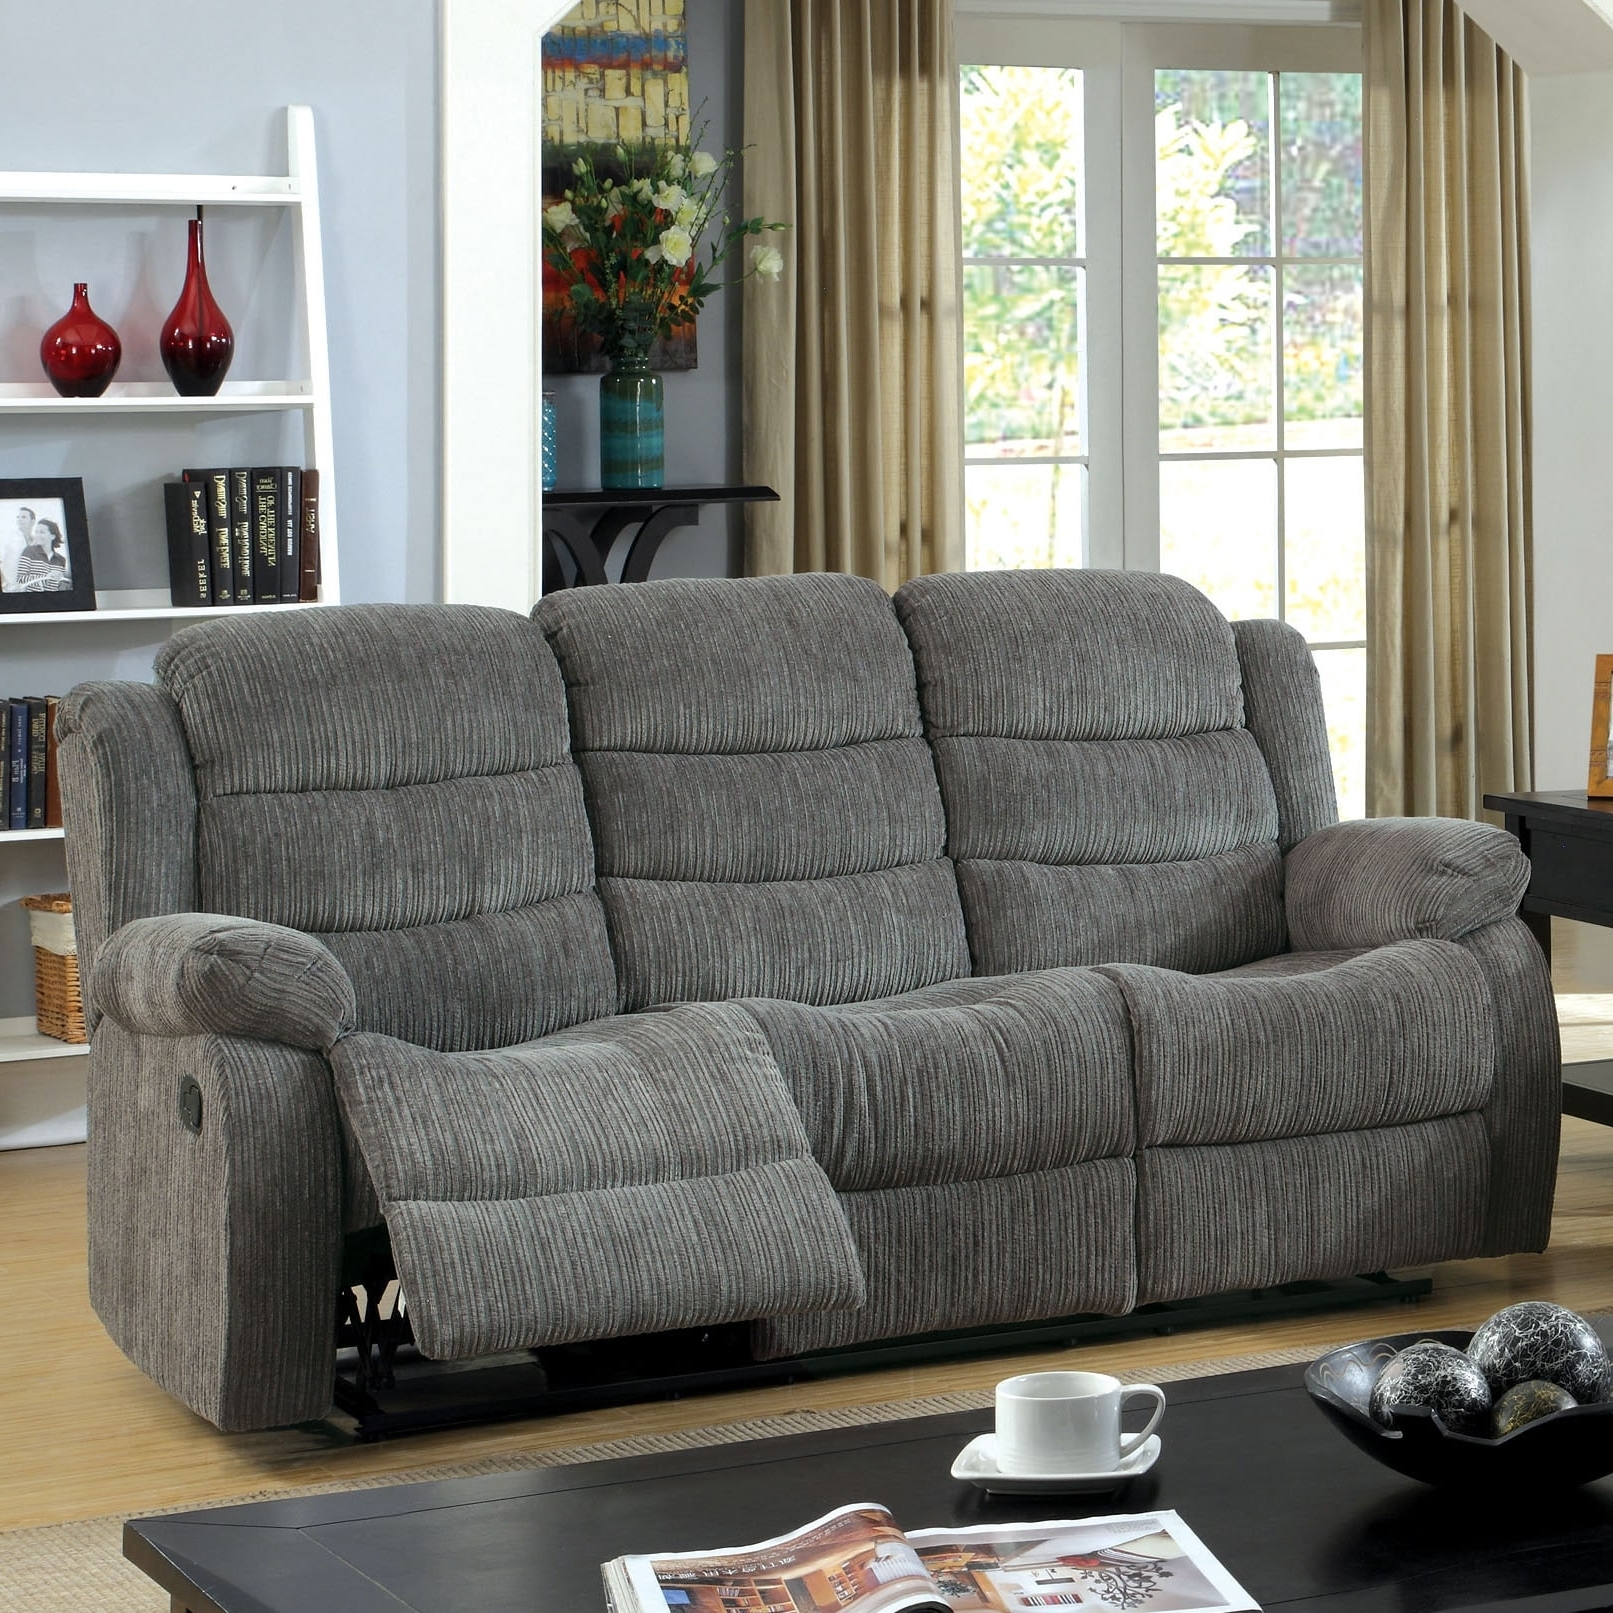 Greensboro Nc Sectional Sofas Pertaining To Most Recently Released American Furniture Warehouse Greensboro Nc Fresh Fresh Sectional (View 9 of 15)